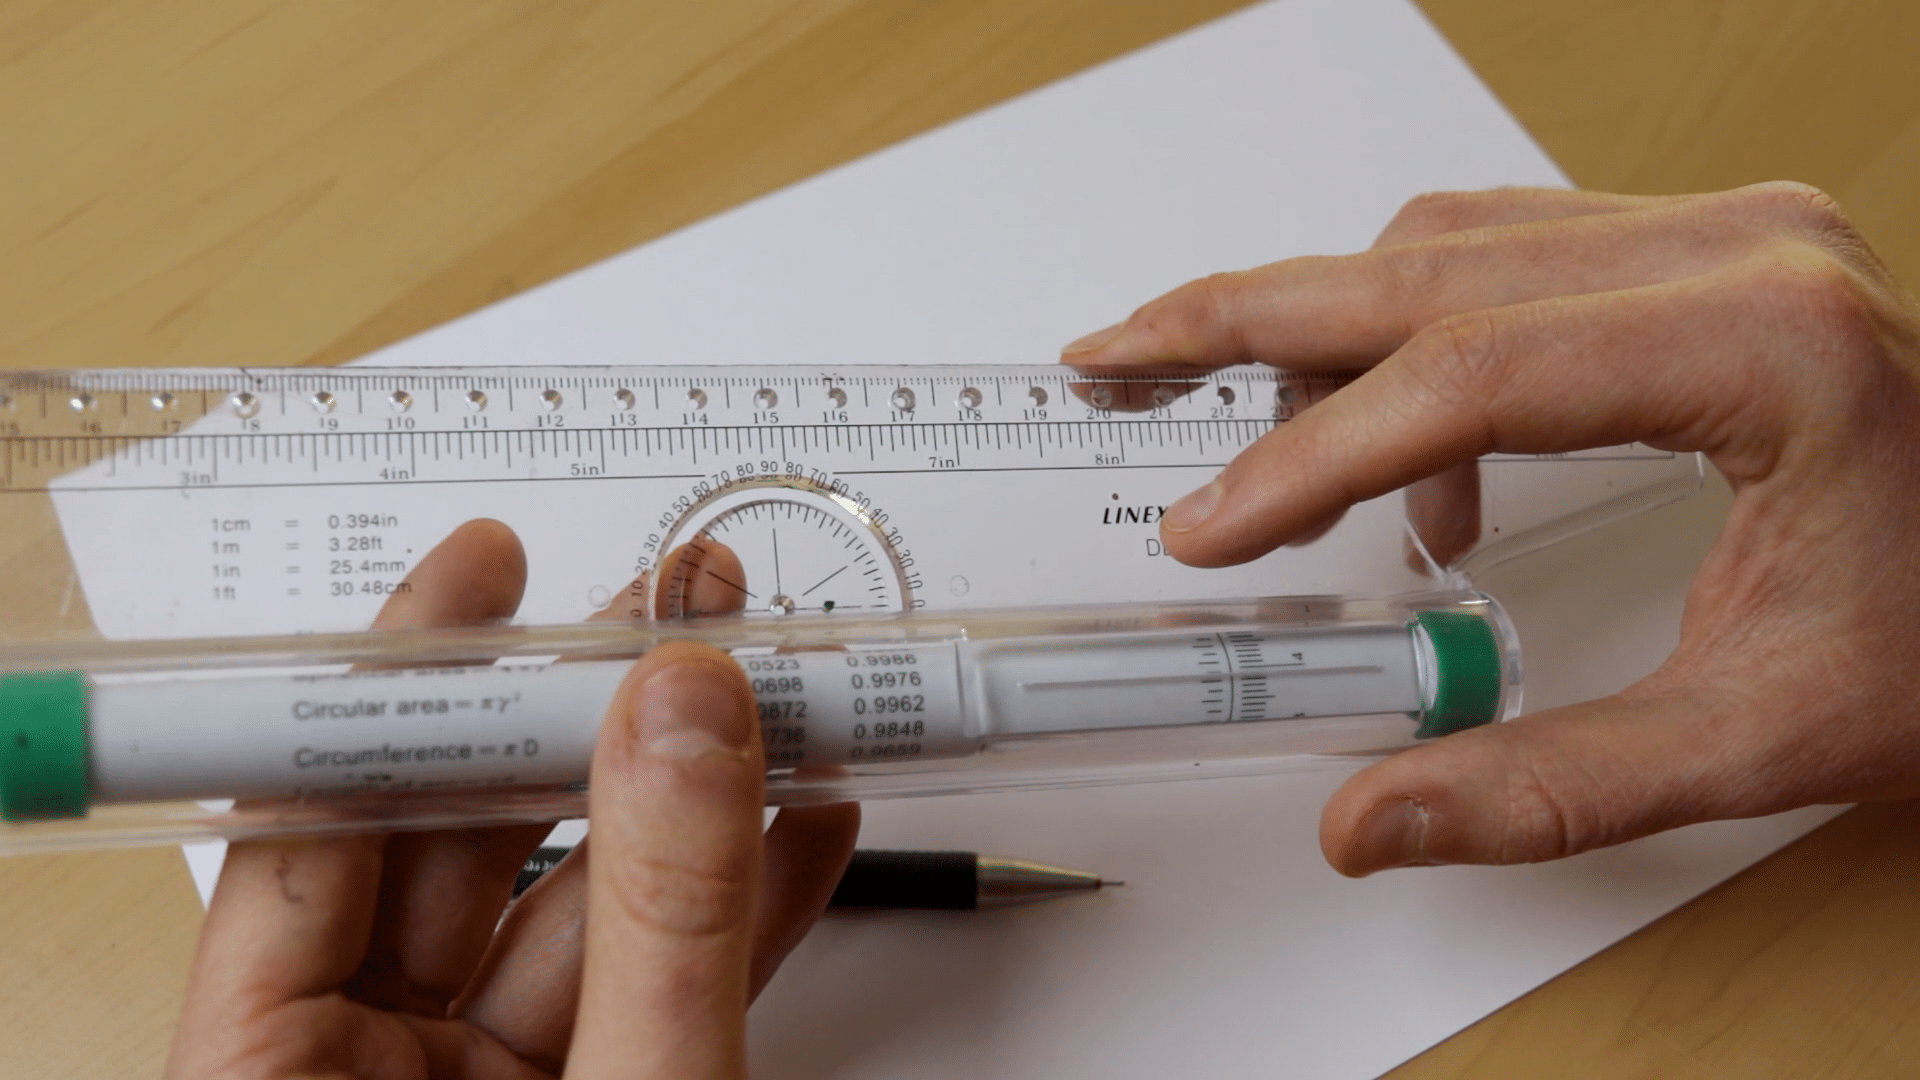 How To Make Calligraphy Guidelines Image 20 - Lettering Daily